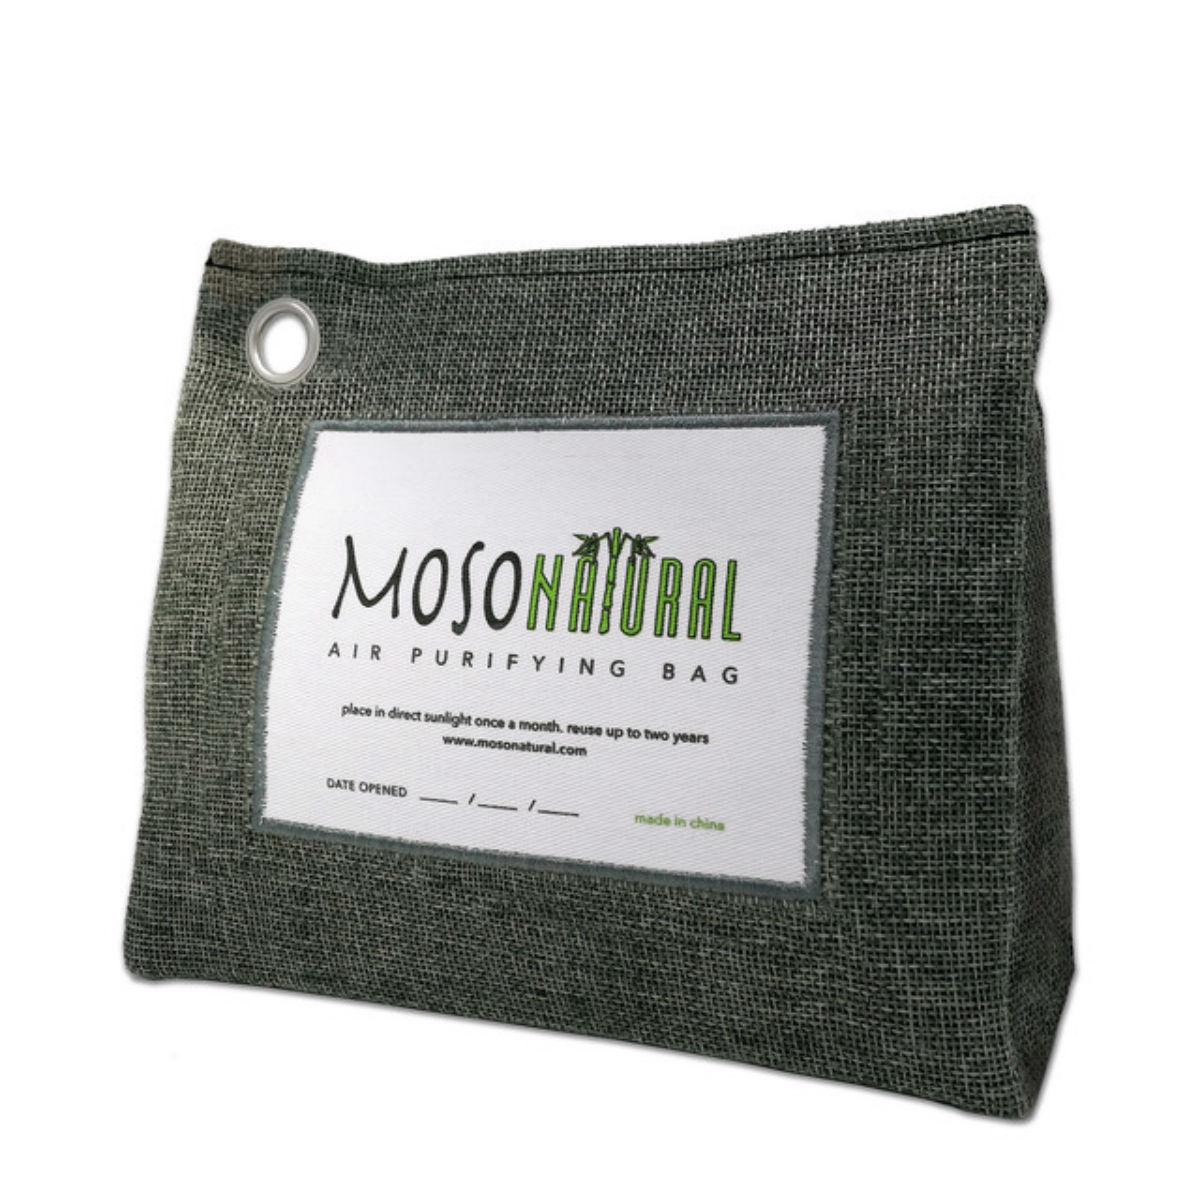 Moso Natural Air Purifying Stand Up Bag - Charcoal